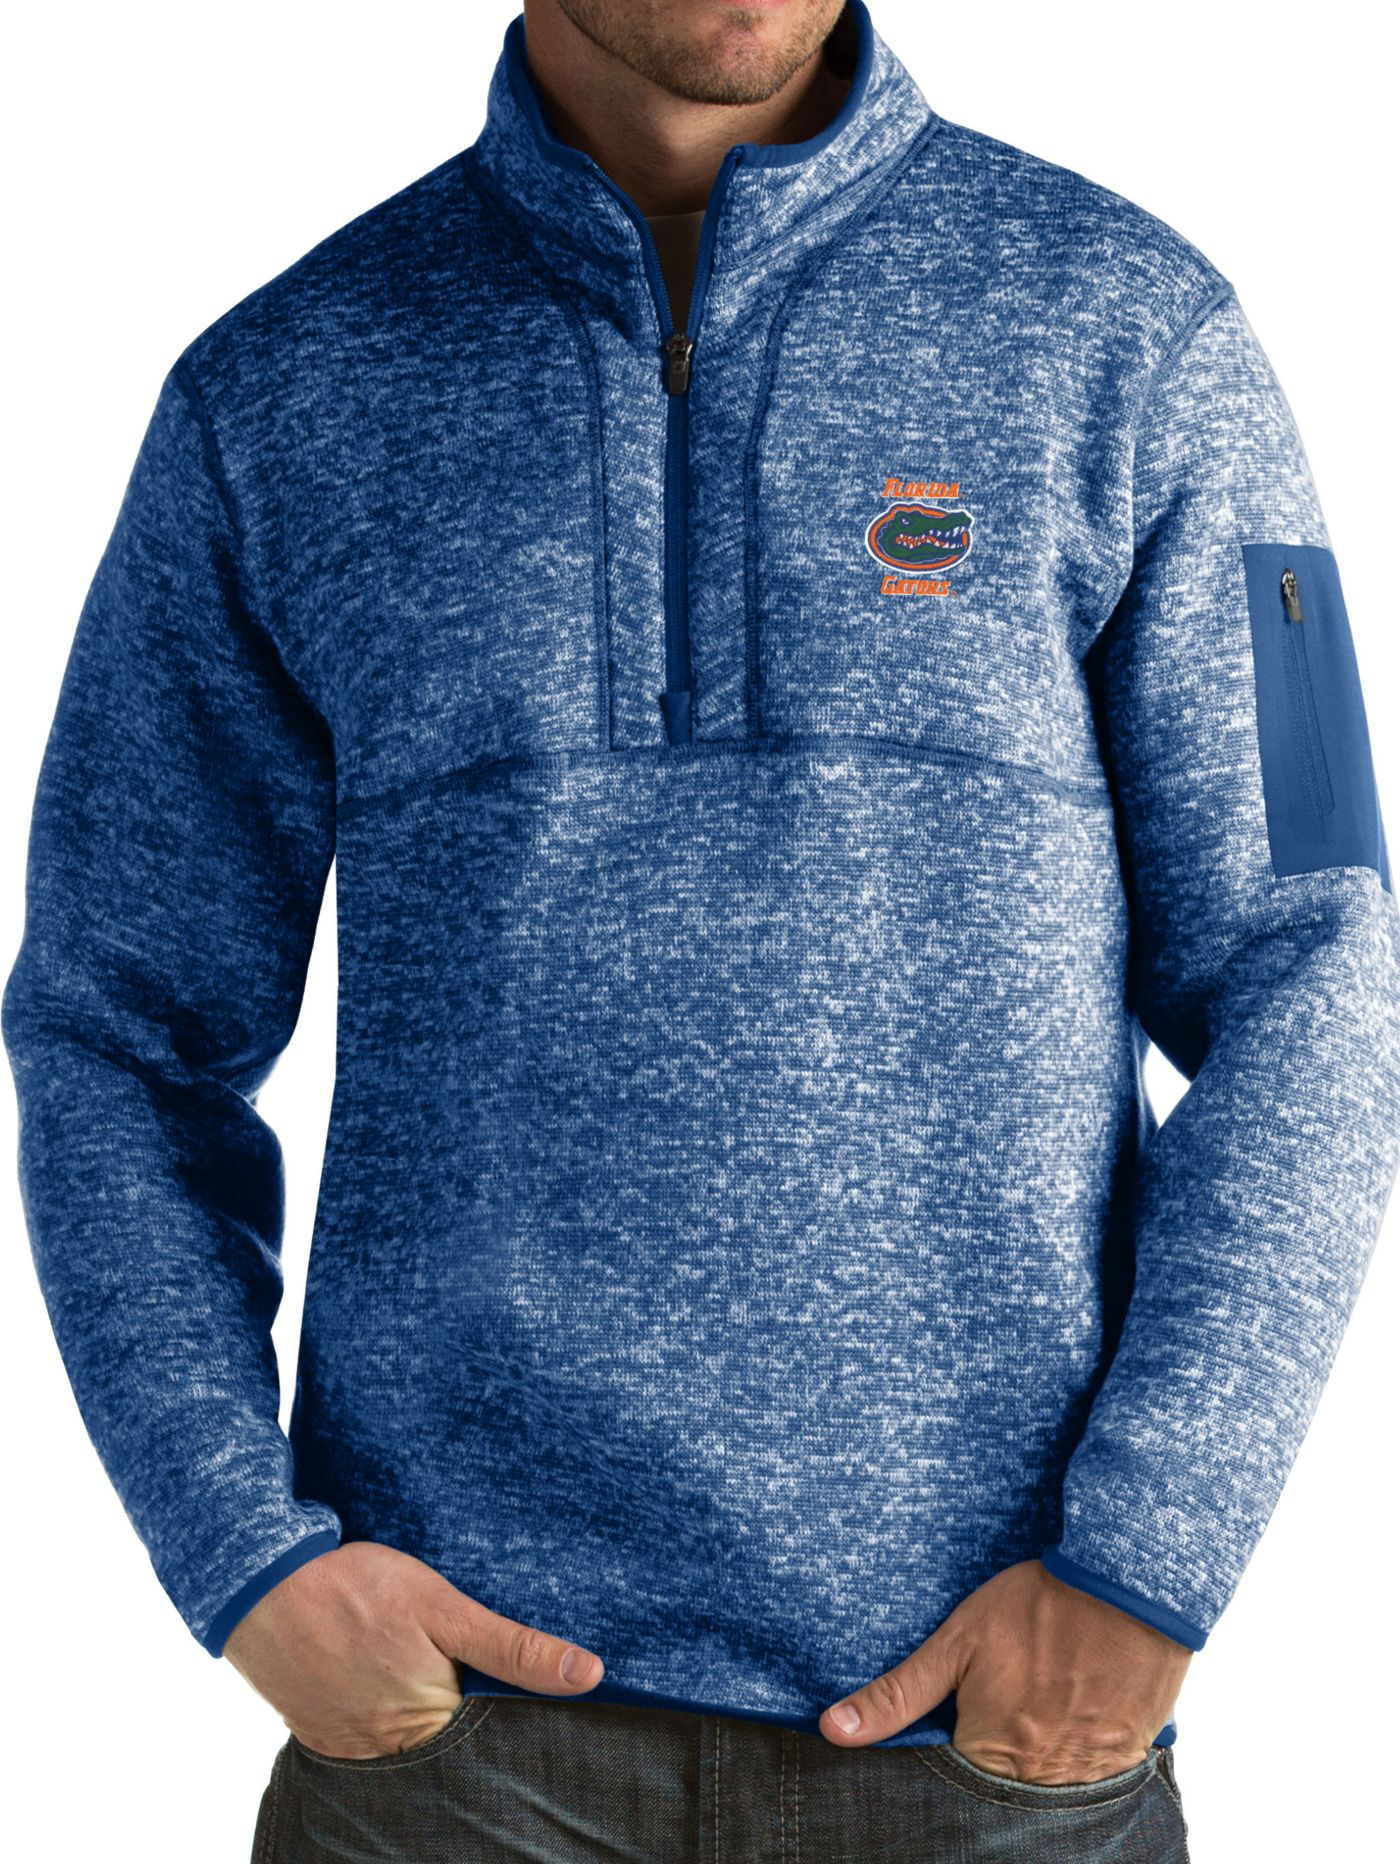 Antigua Men's Florida Gators Blue Fortune Pullover Jacket